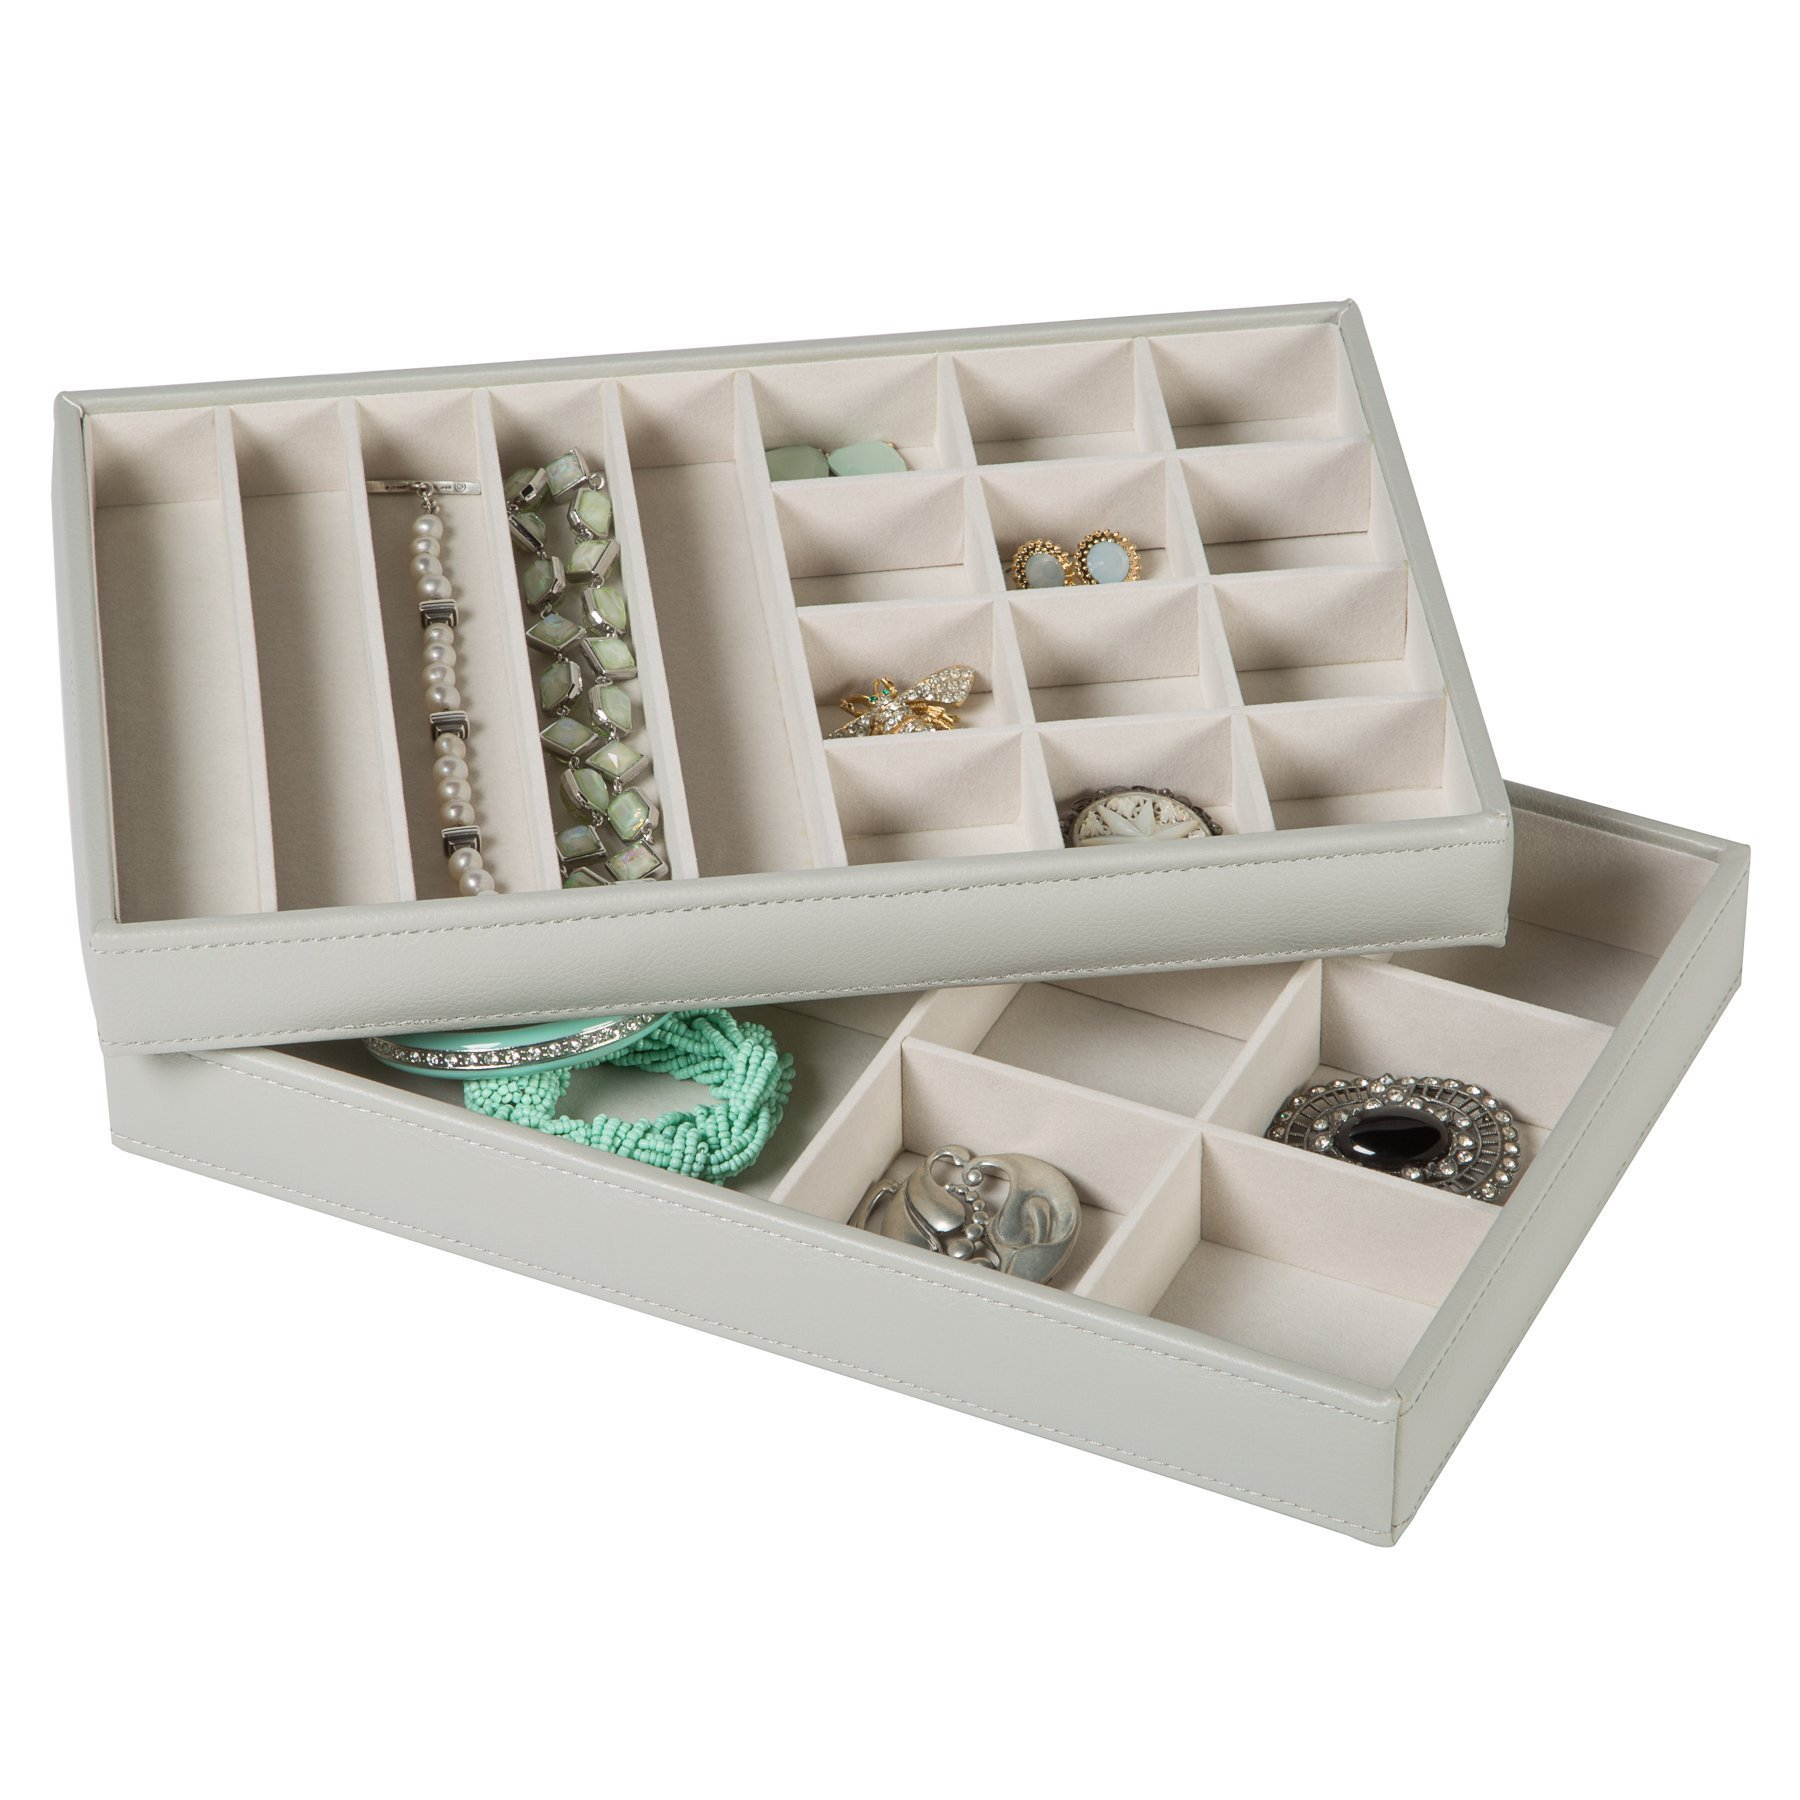 HomeCrate Stackable Jewelry Organizer Trays for Showcase Display, Set of 2 - Pebbled Gray